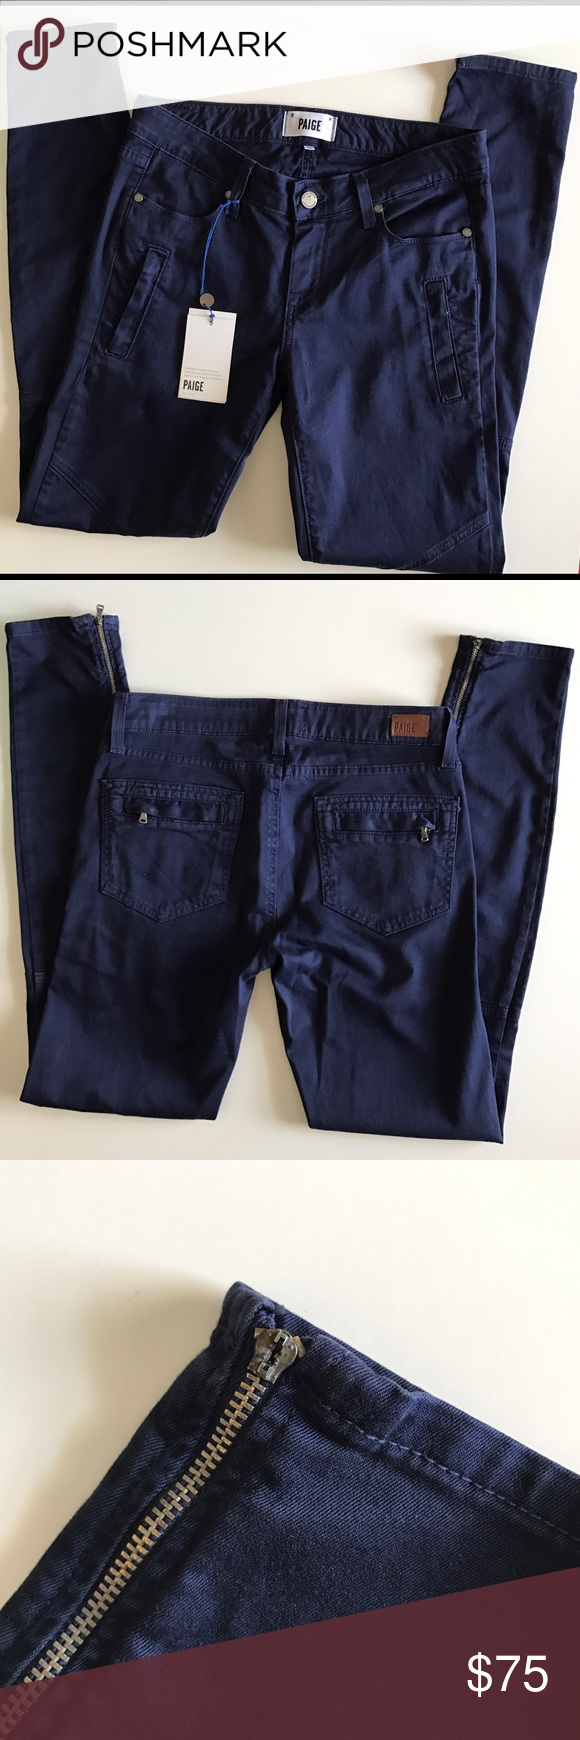 """Paige Denim """"Marley"""" Skinny Twill Moto pants NWT however, the zipper pull on right ankle has broken off. Zippers all still fully functional. Size 27. Waist 15"""" flat across. Inseam 29"""". Color is """"Pacific Dusk"""". Stock photo used to show fit/style. Material is 98% cotton and 2% elastane. Made in USA. Sorry, no trades and I am unable to model. Paige Jeans Pants Skinny"""